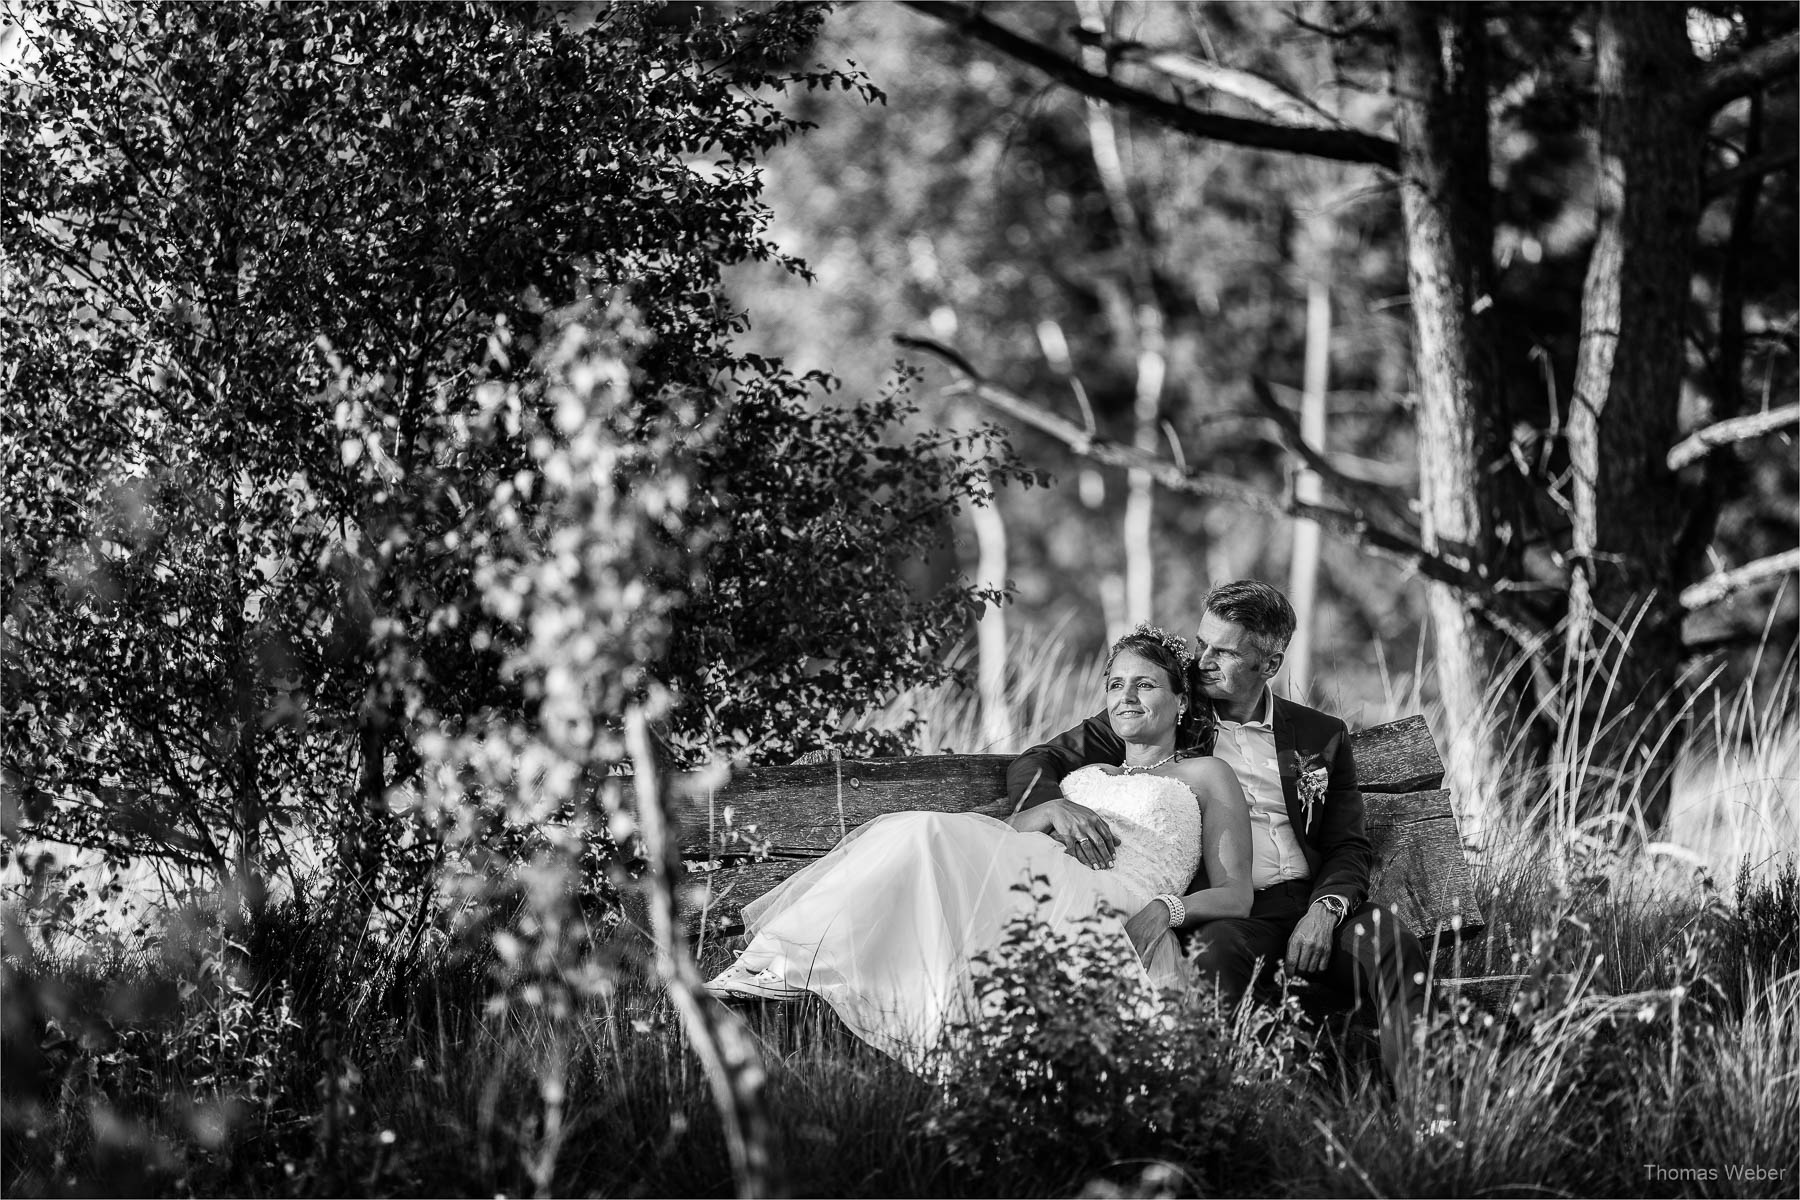 After Wedding Shooting in einer Moorlandschaft, Hochzeitsfotograf Thomas Weber aus Oldenburg